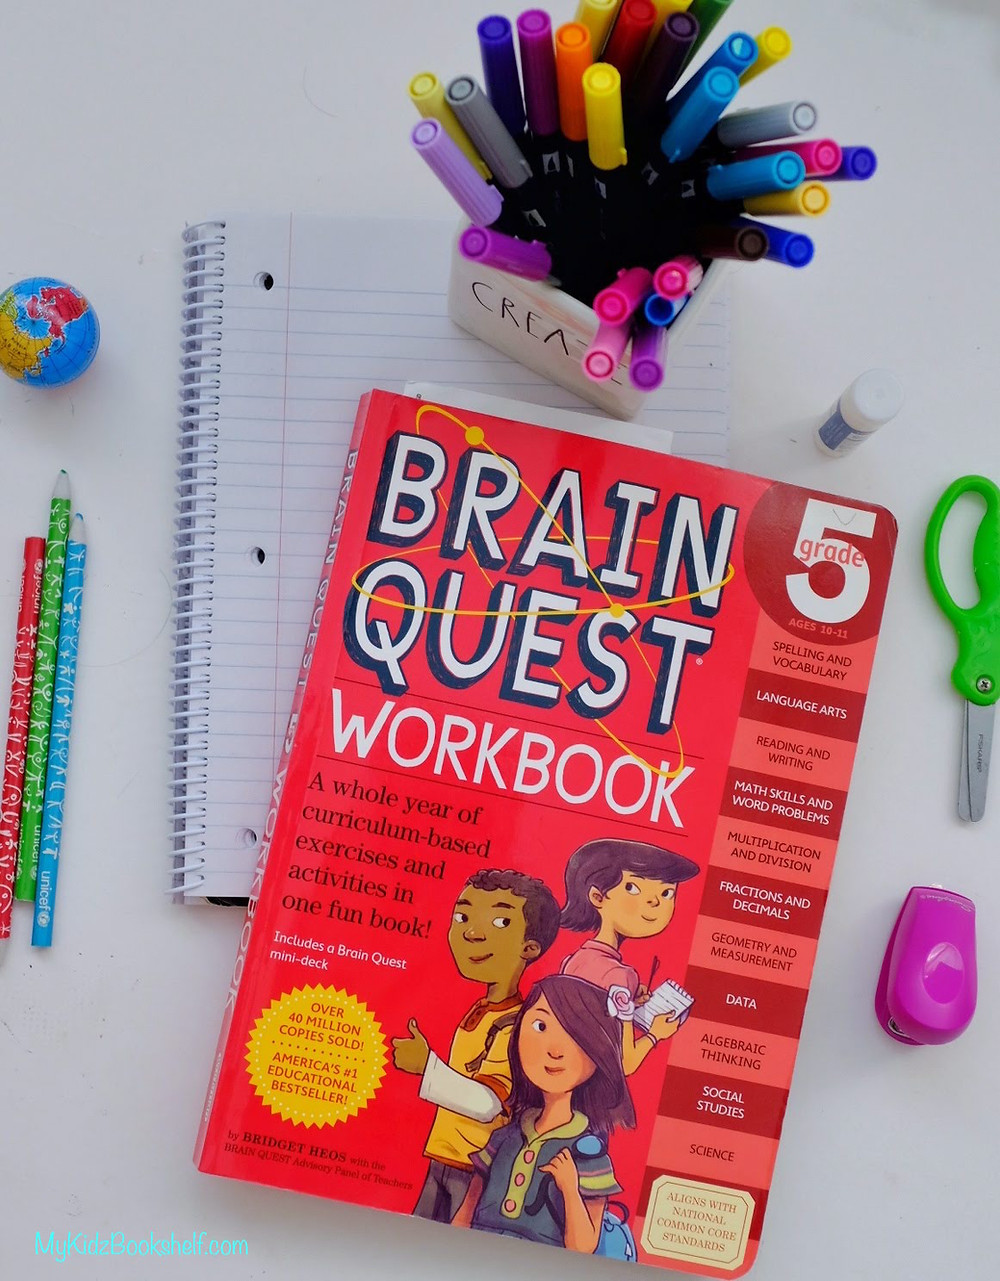 Brain quest workbook grade five with markers, pencils and notebook